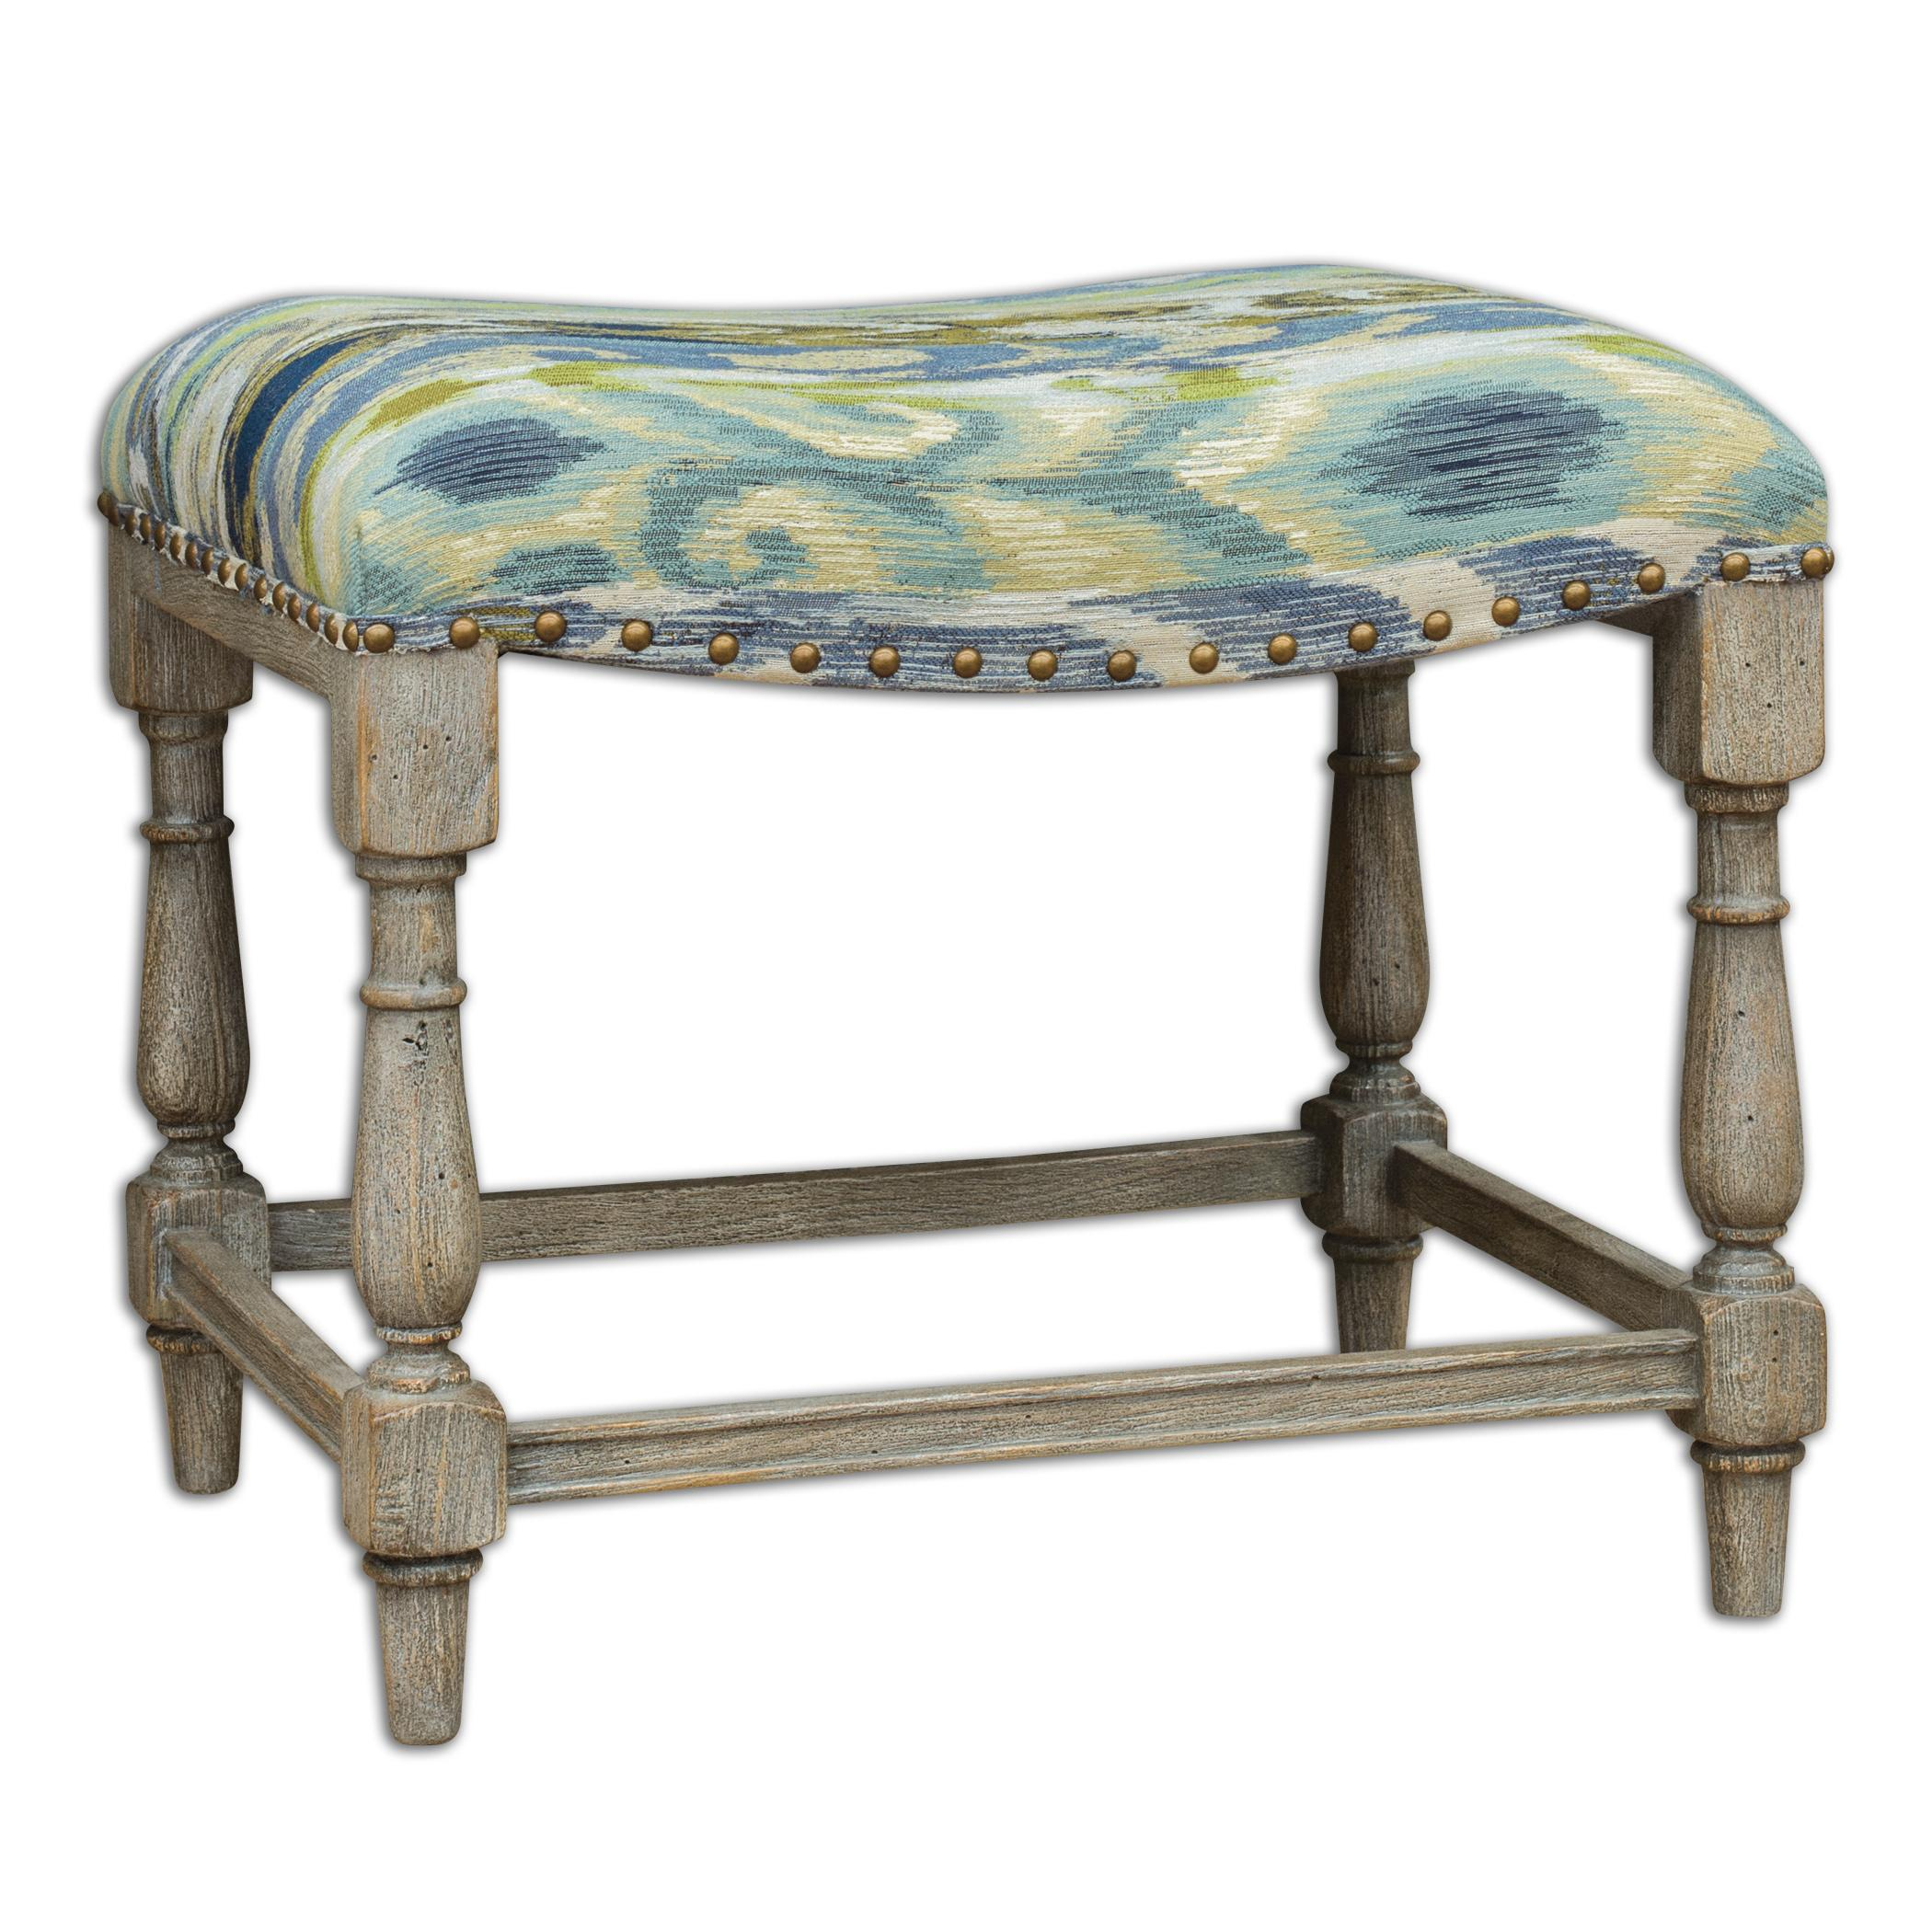 Uttermost Accent Furniture Minkah Small Bench - Item Number: 23627